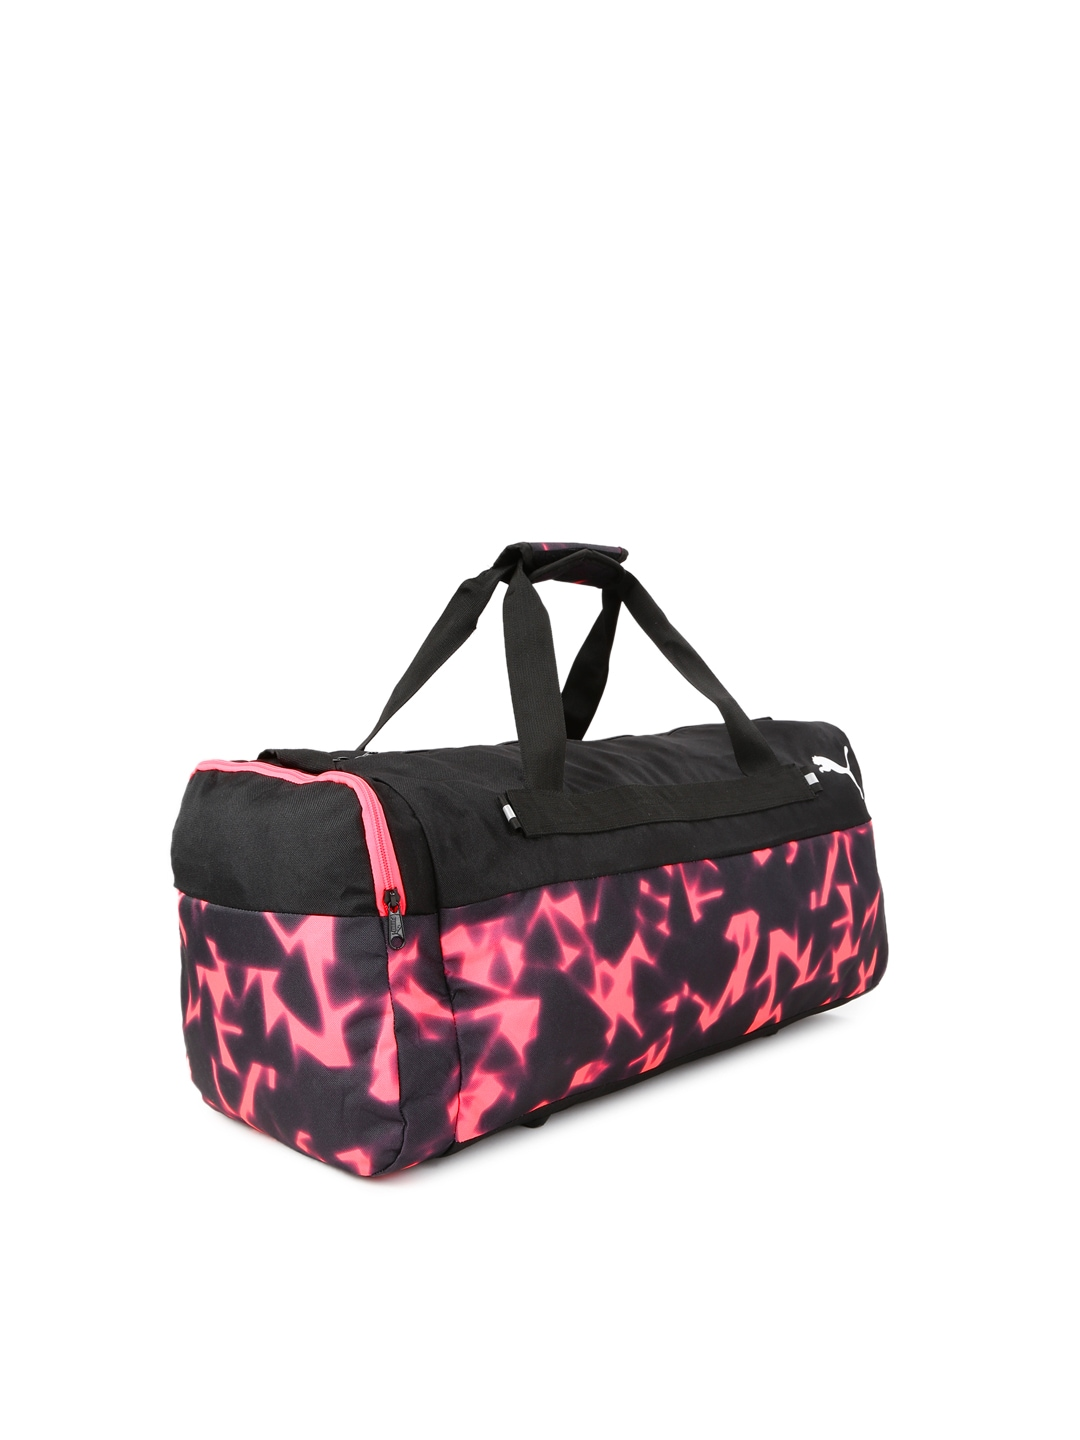 8c368bf8519d puma bmw bag pink cheap   OFF62% Discounted